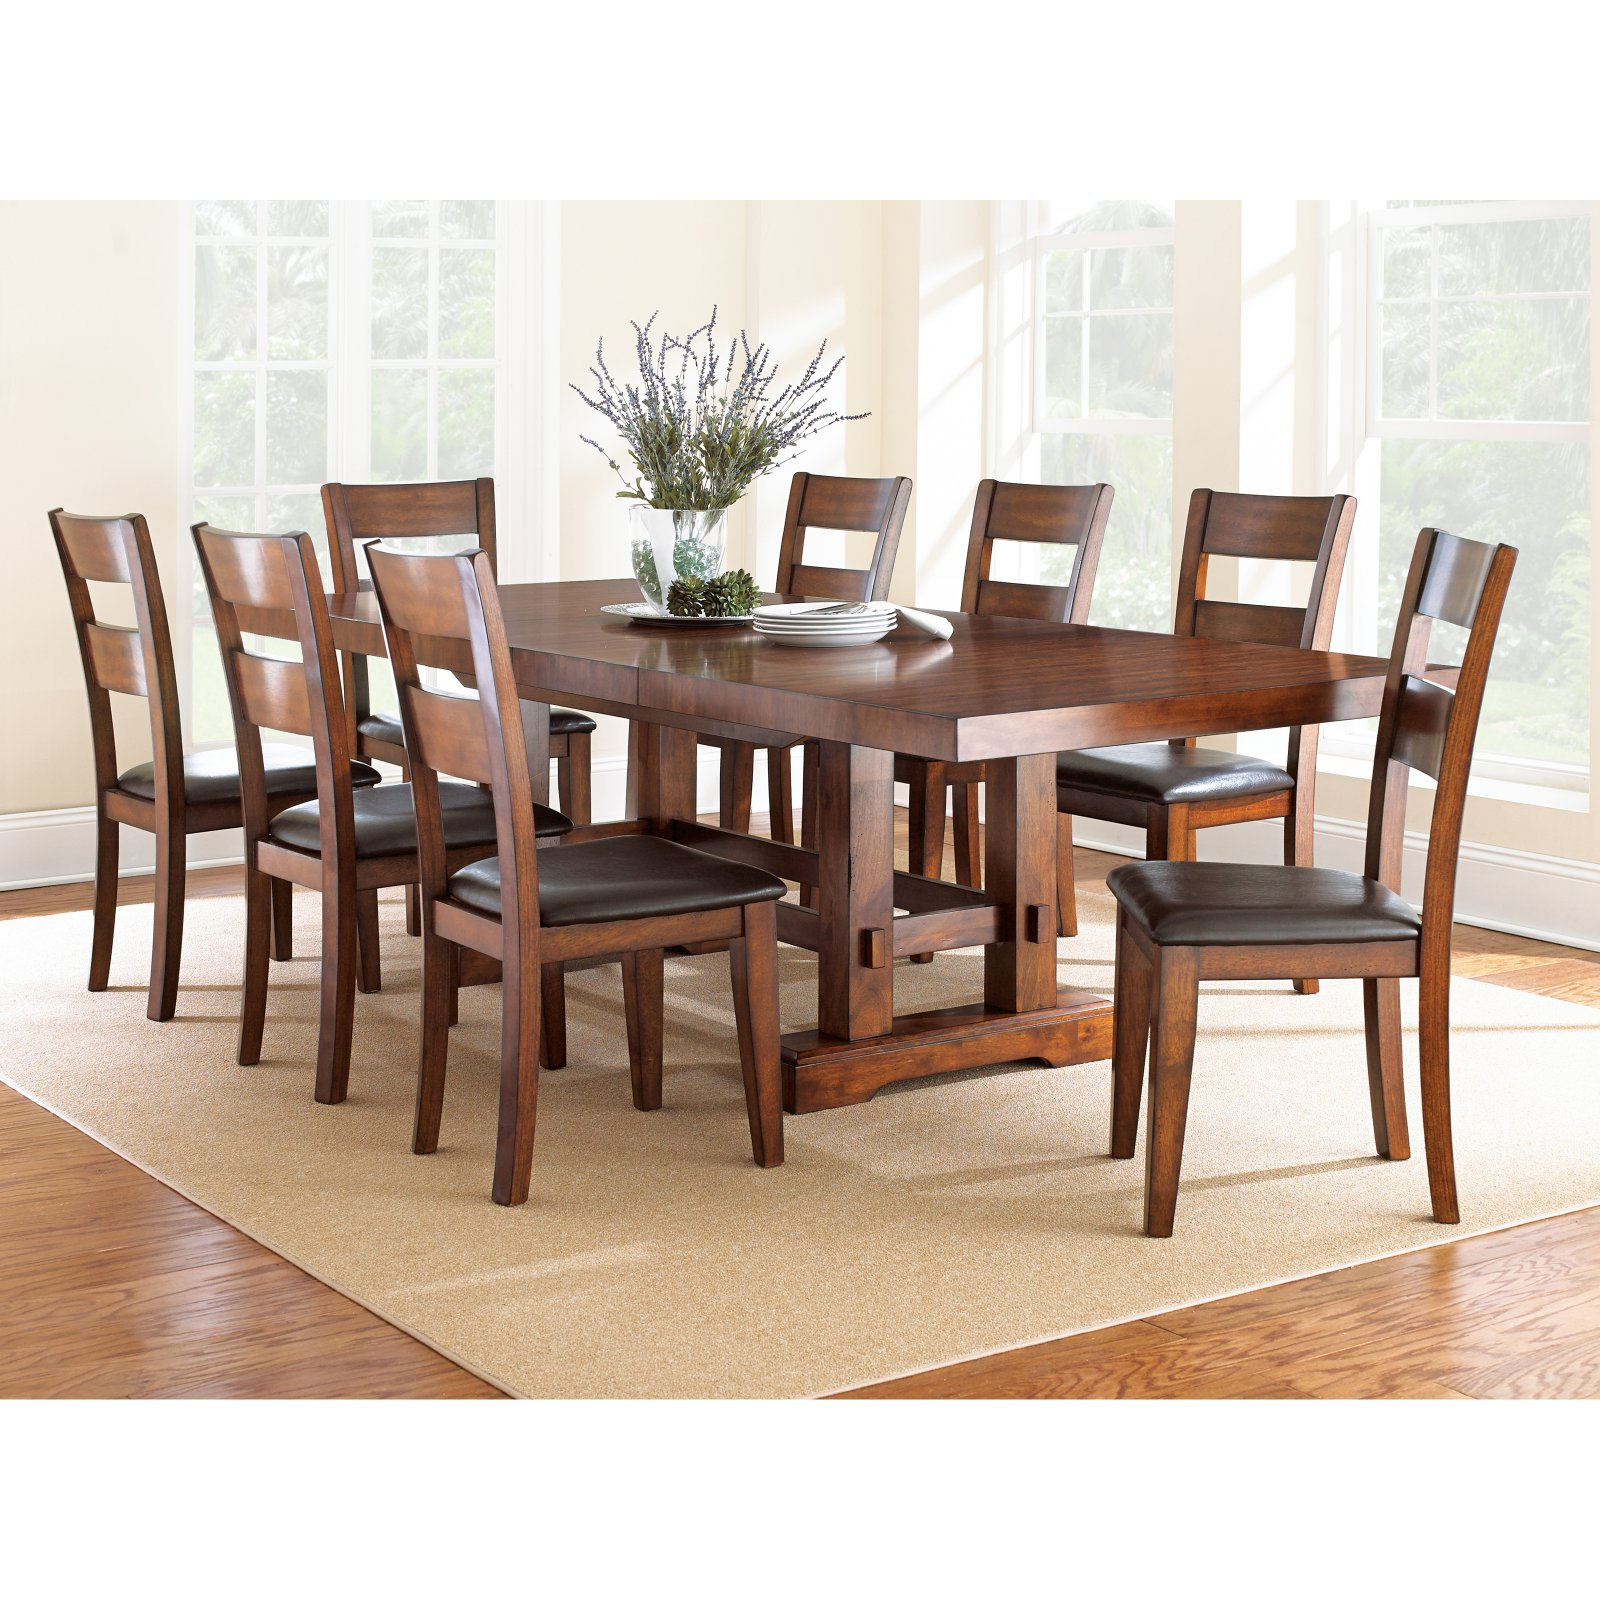 Medium Dining Tables Within Newest Steve Silver Zappa 9 Piece Dining Table Set – Medium Cherry (View 25 of 25)